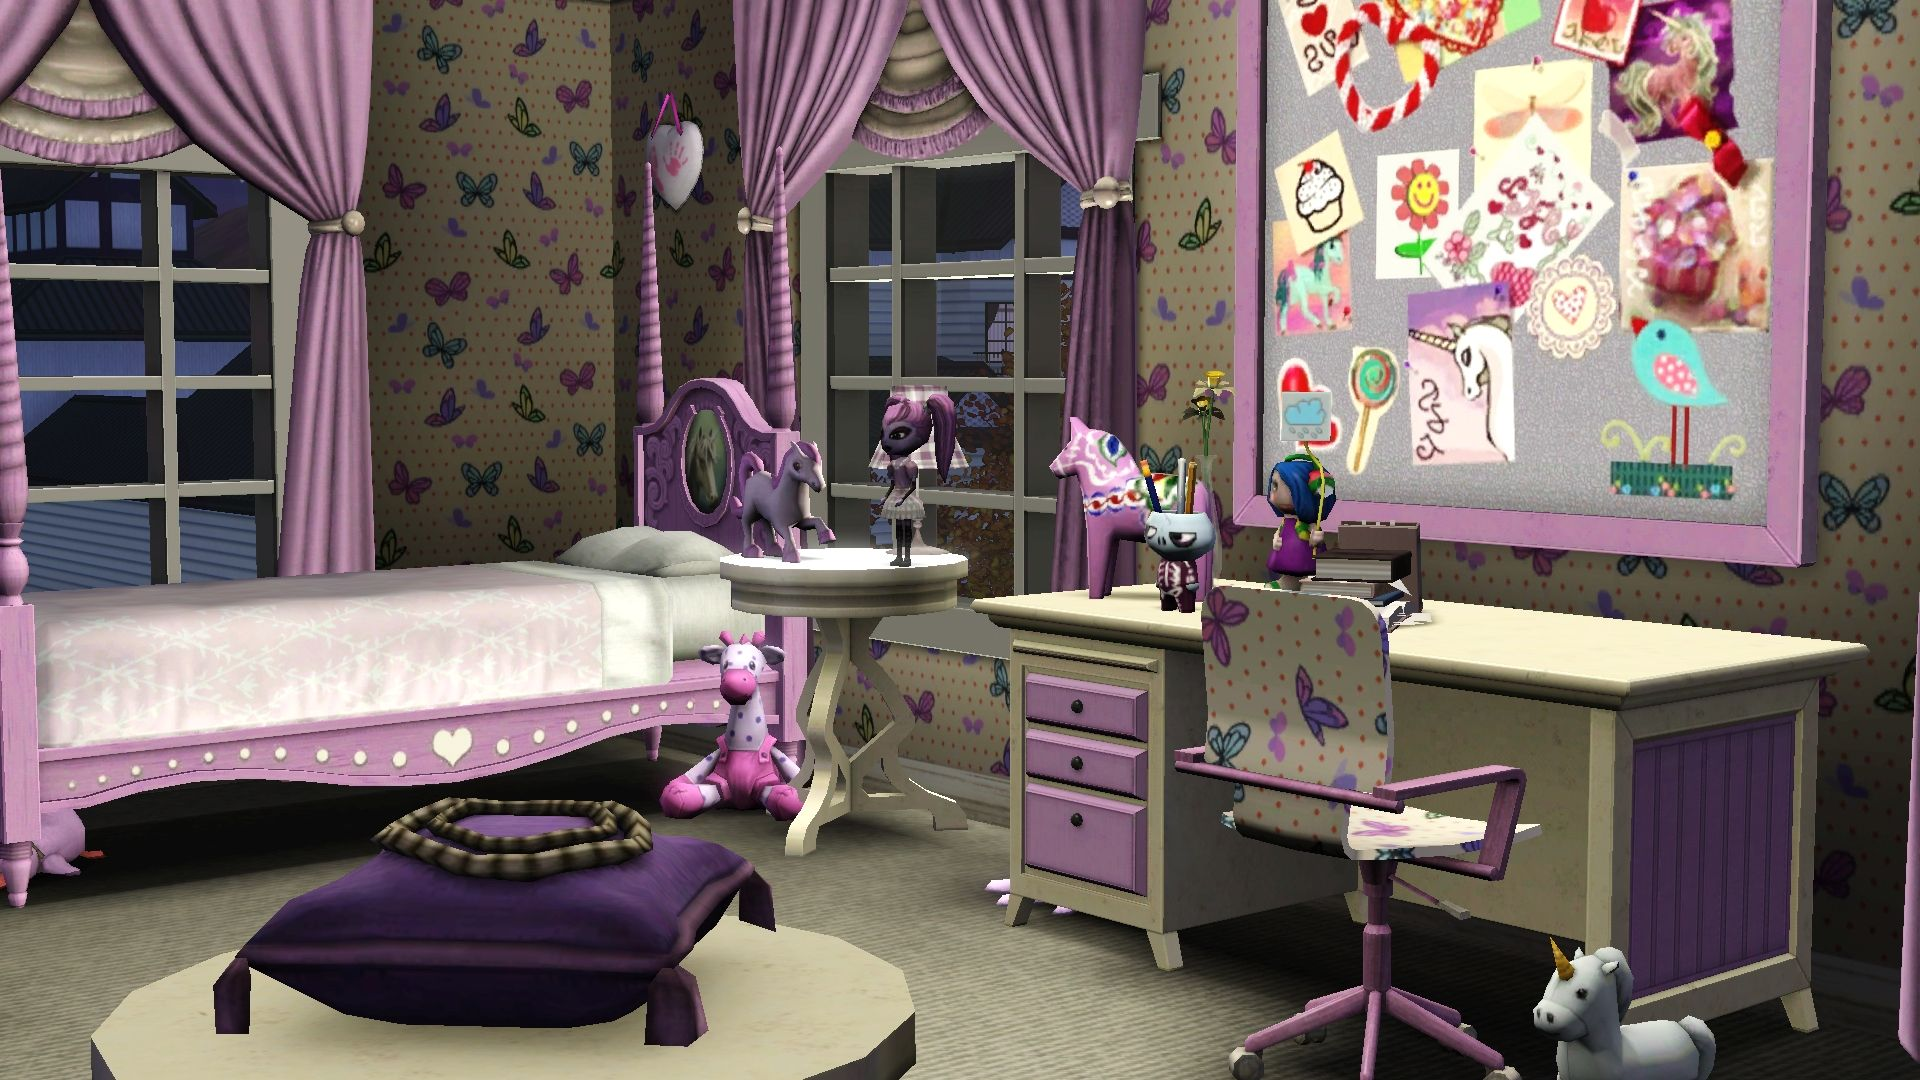 Sims 3 Bedroom Decor Cute Girls Room The Sims 3 Interior Sims 3 Pinterest The